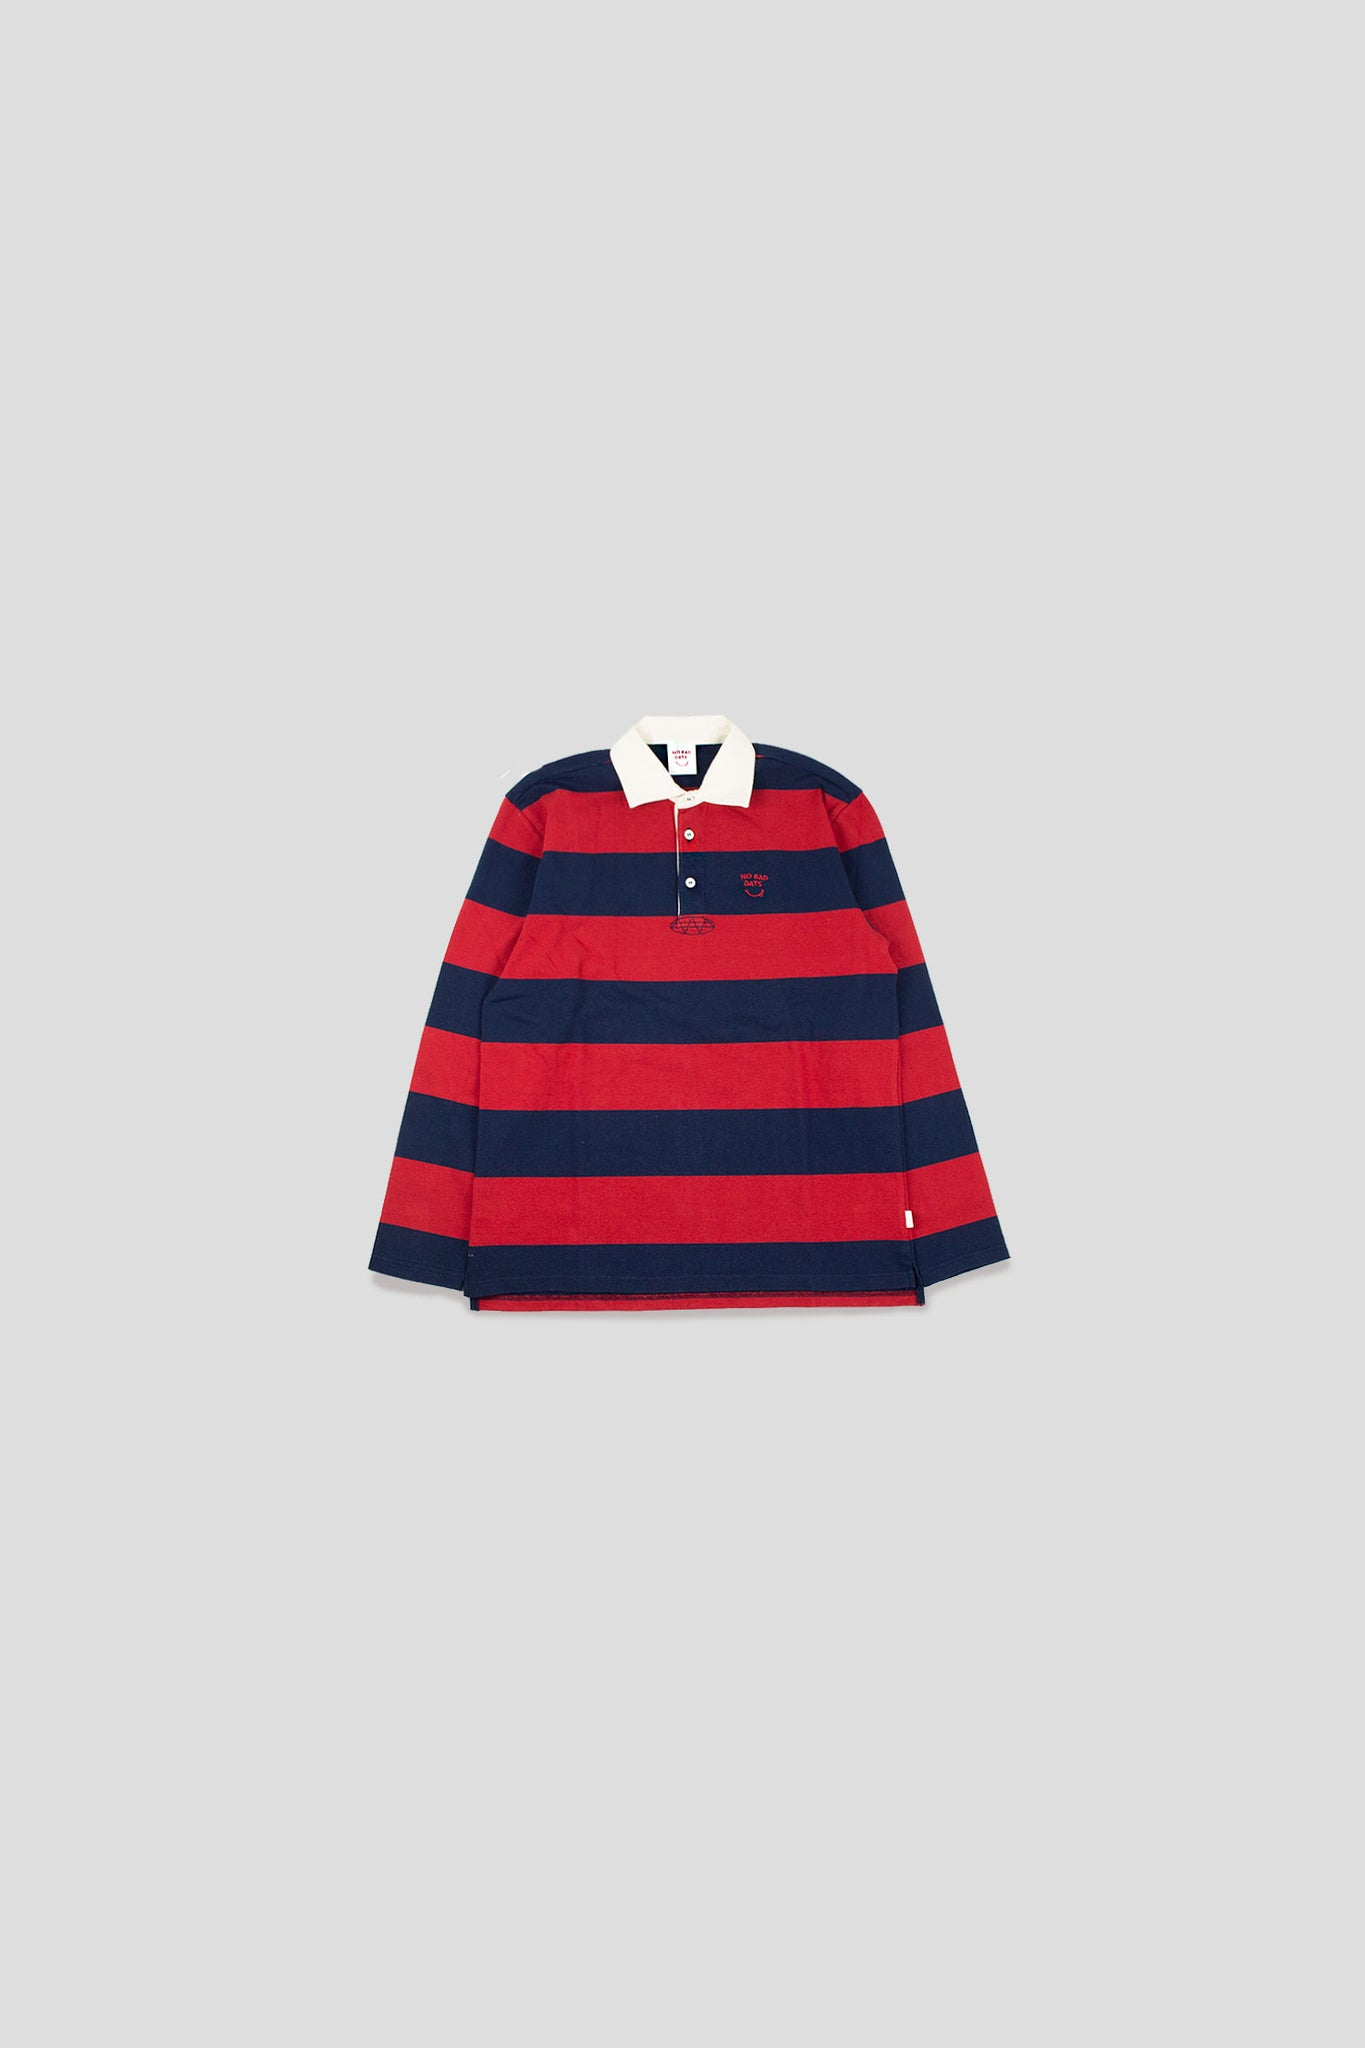 HORIZONTAL STRIPES RED